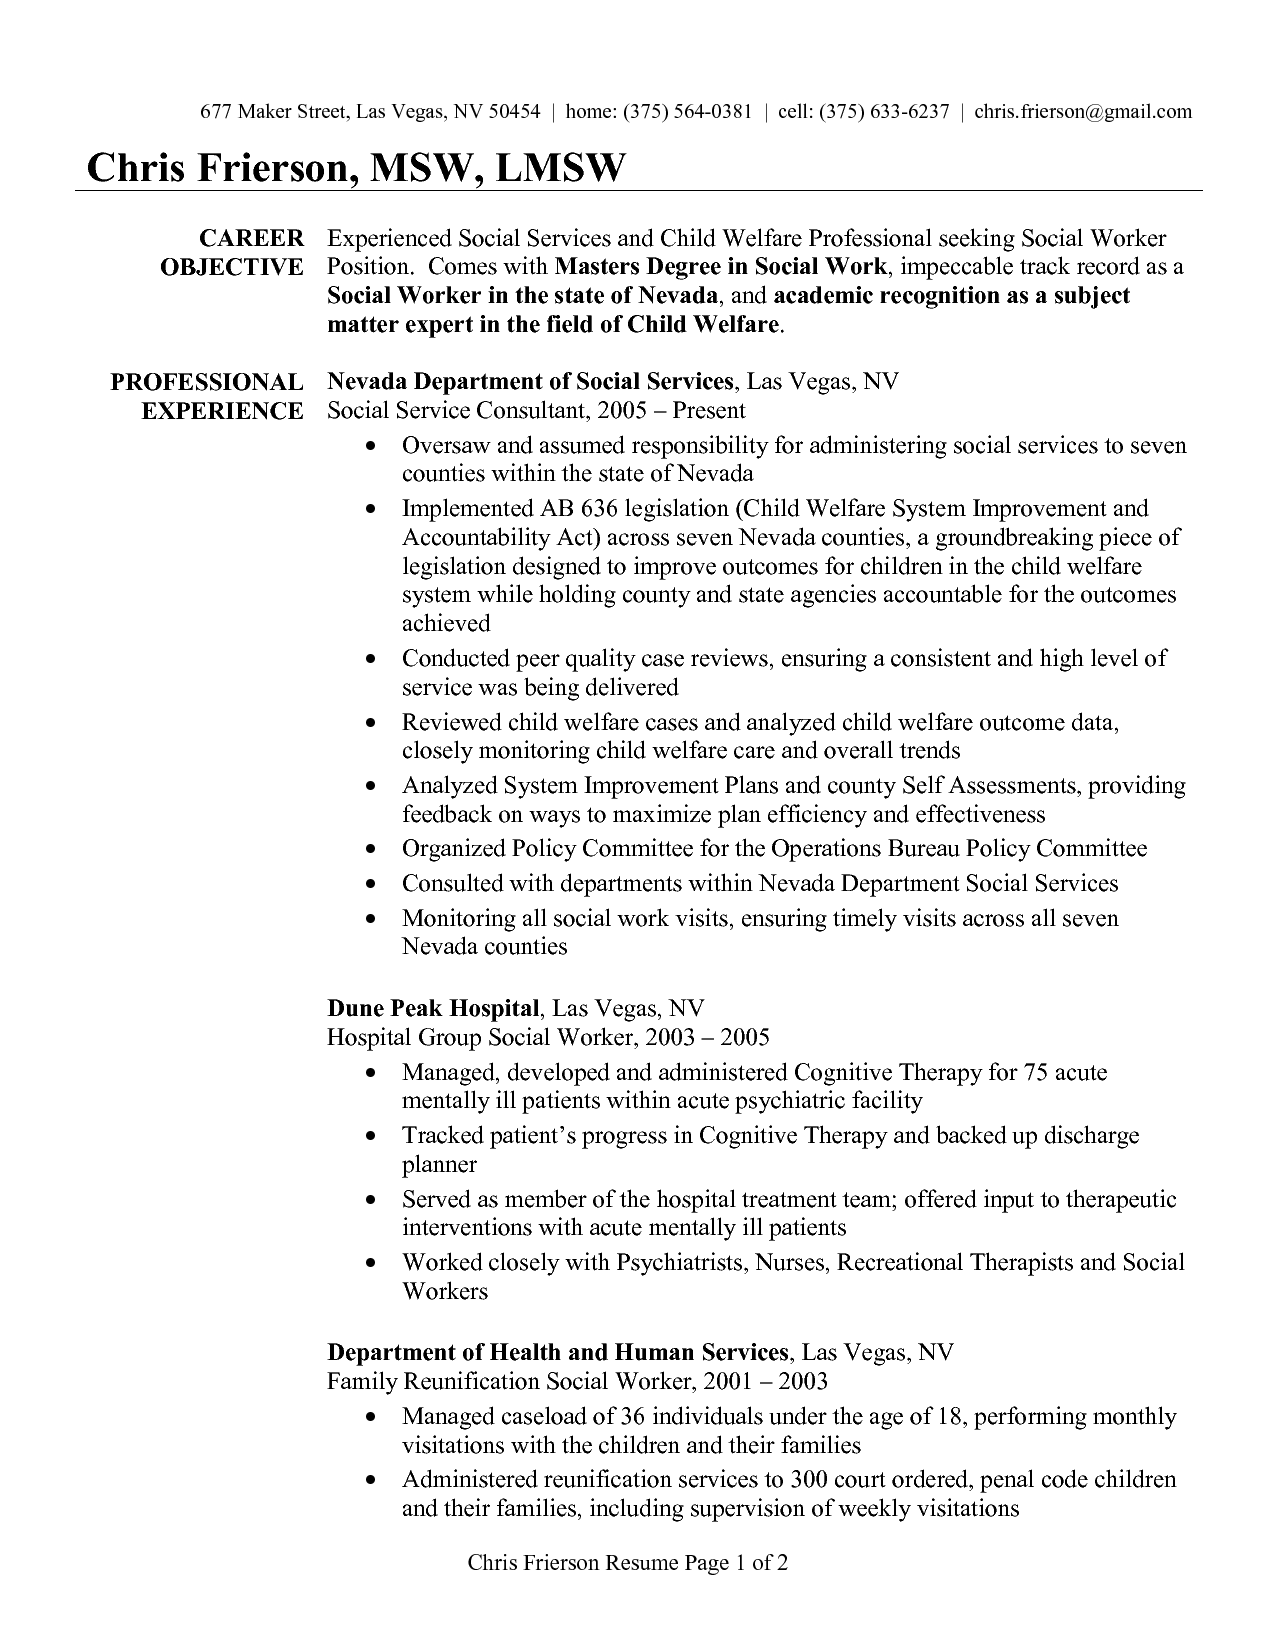 social worker resume objective exles templates